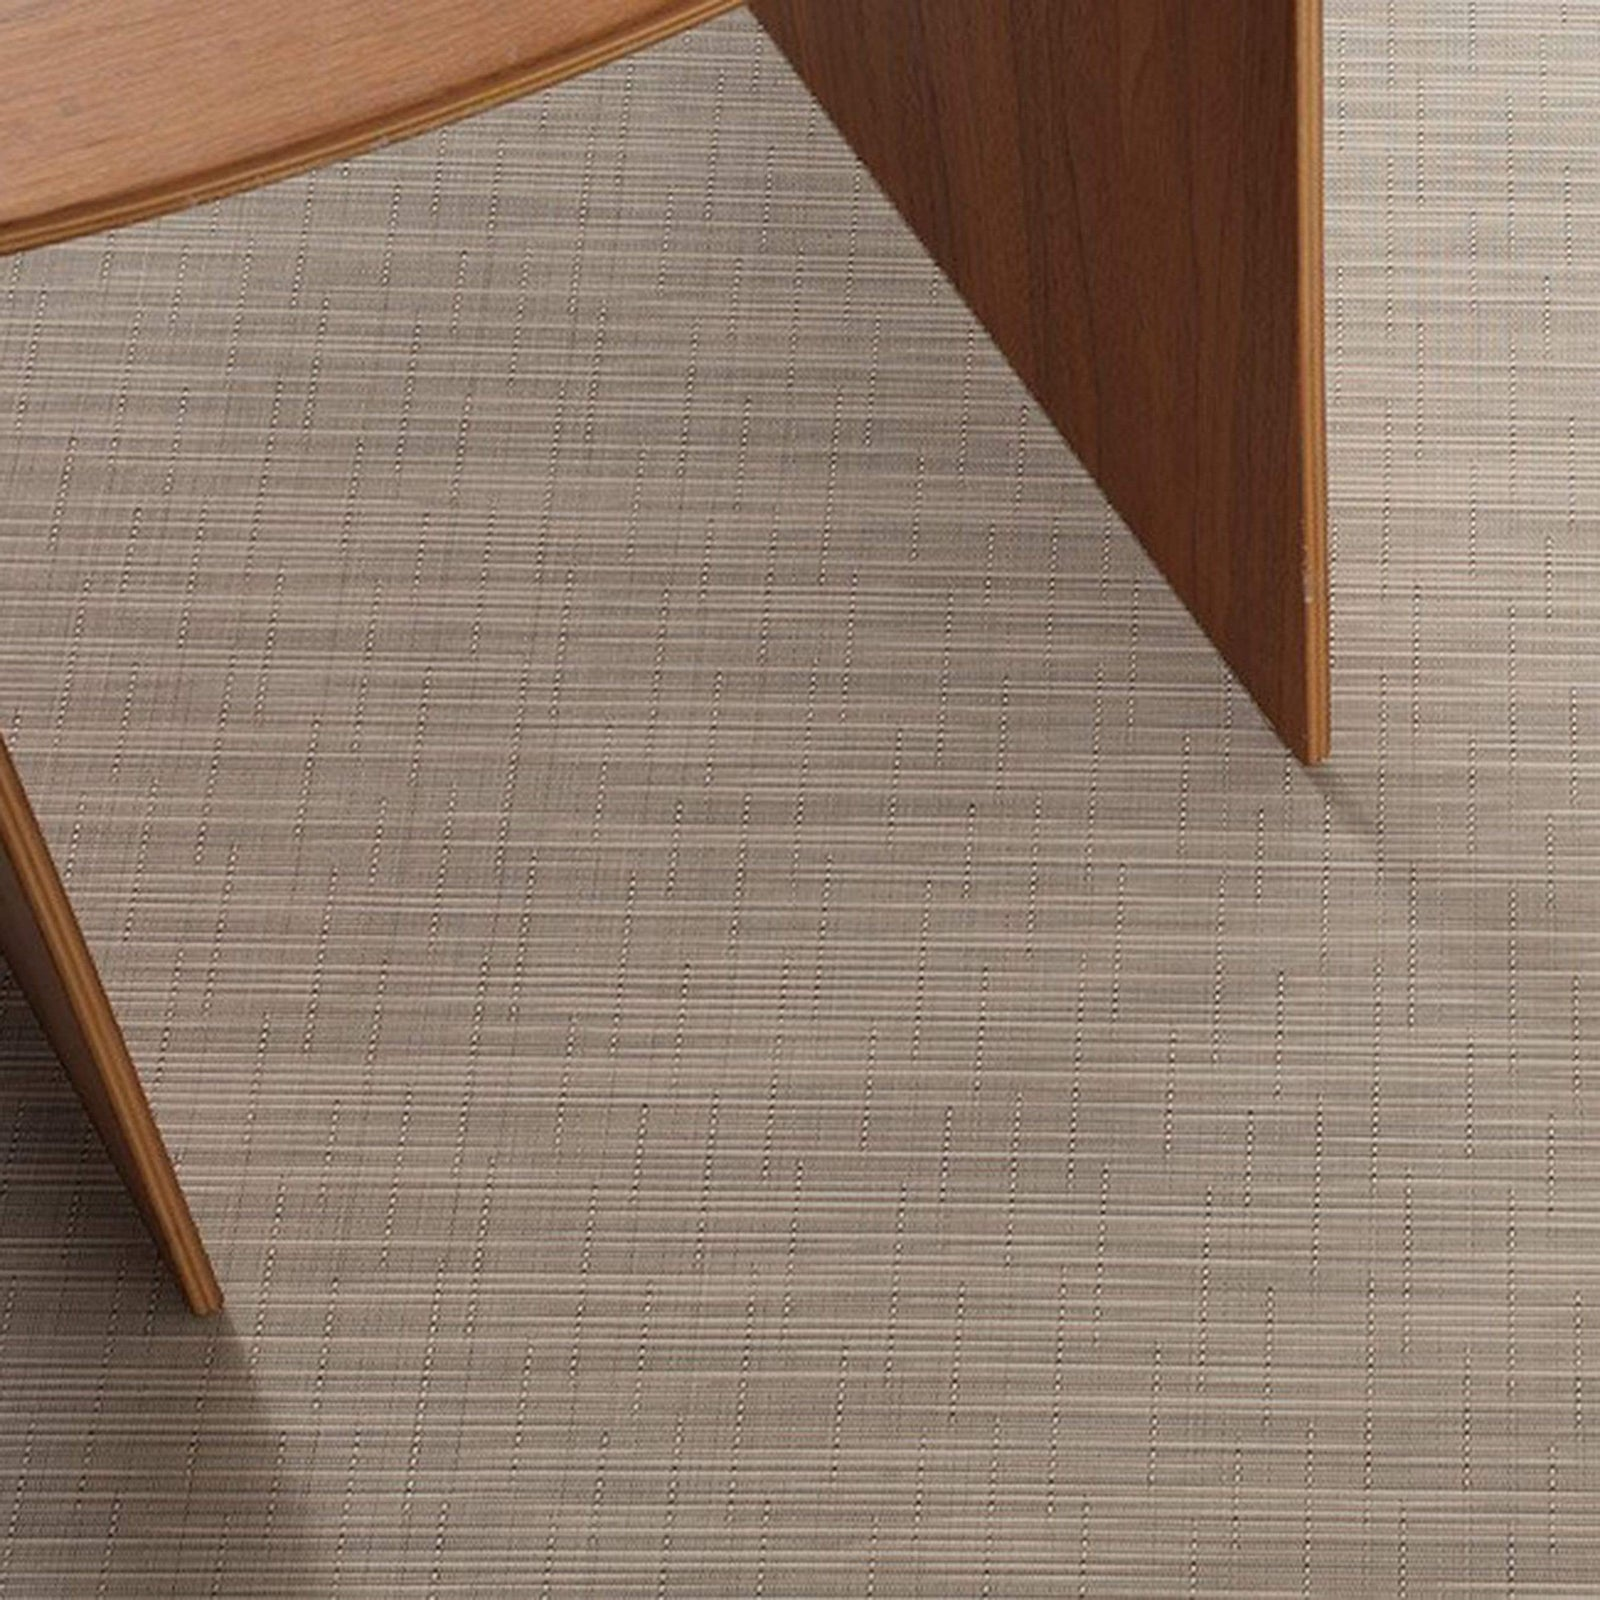 Chilewich Rug Reed Woven Floormat - Bisque